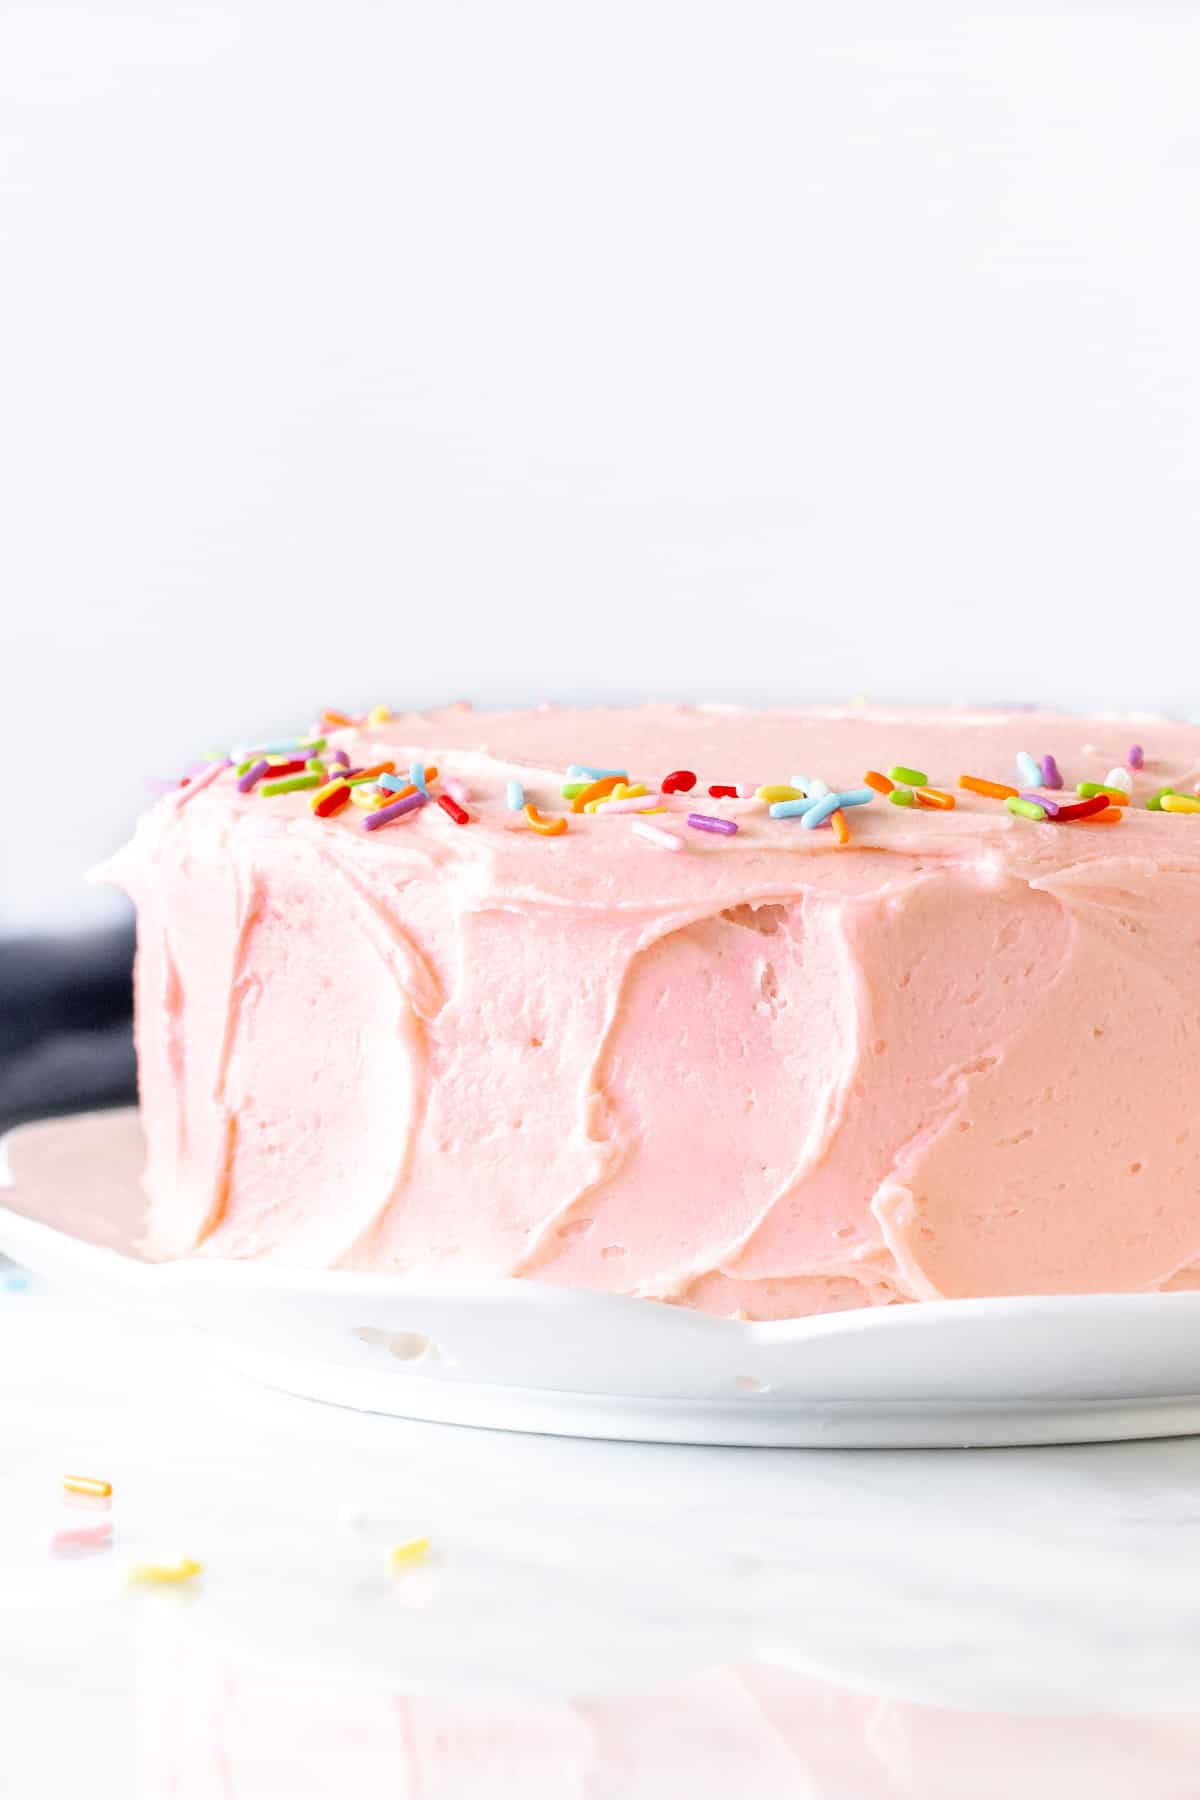 Layer cake with pink frosting.